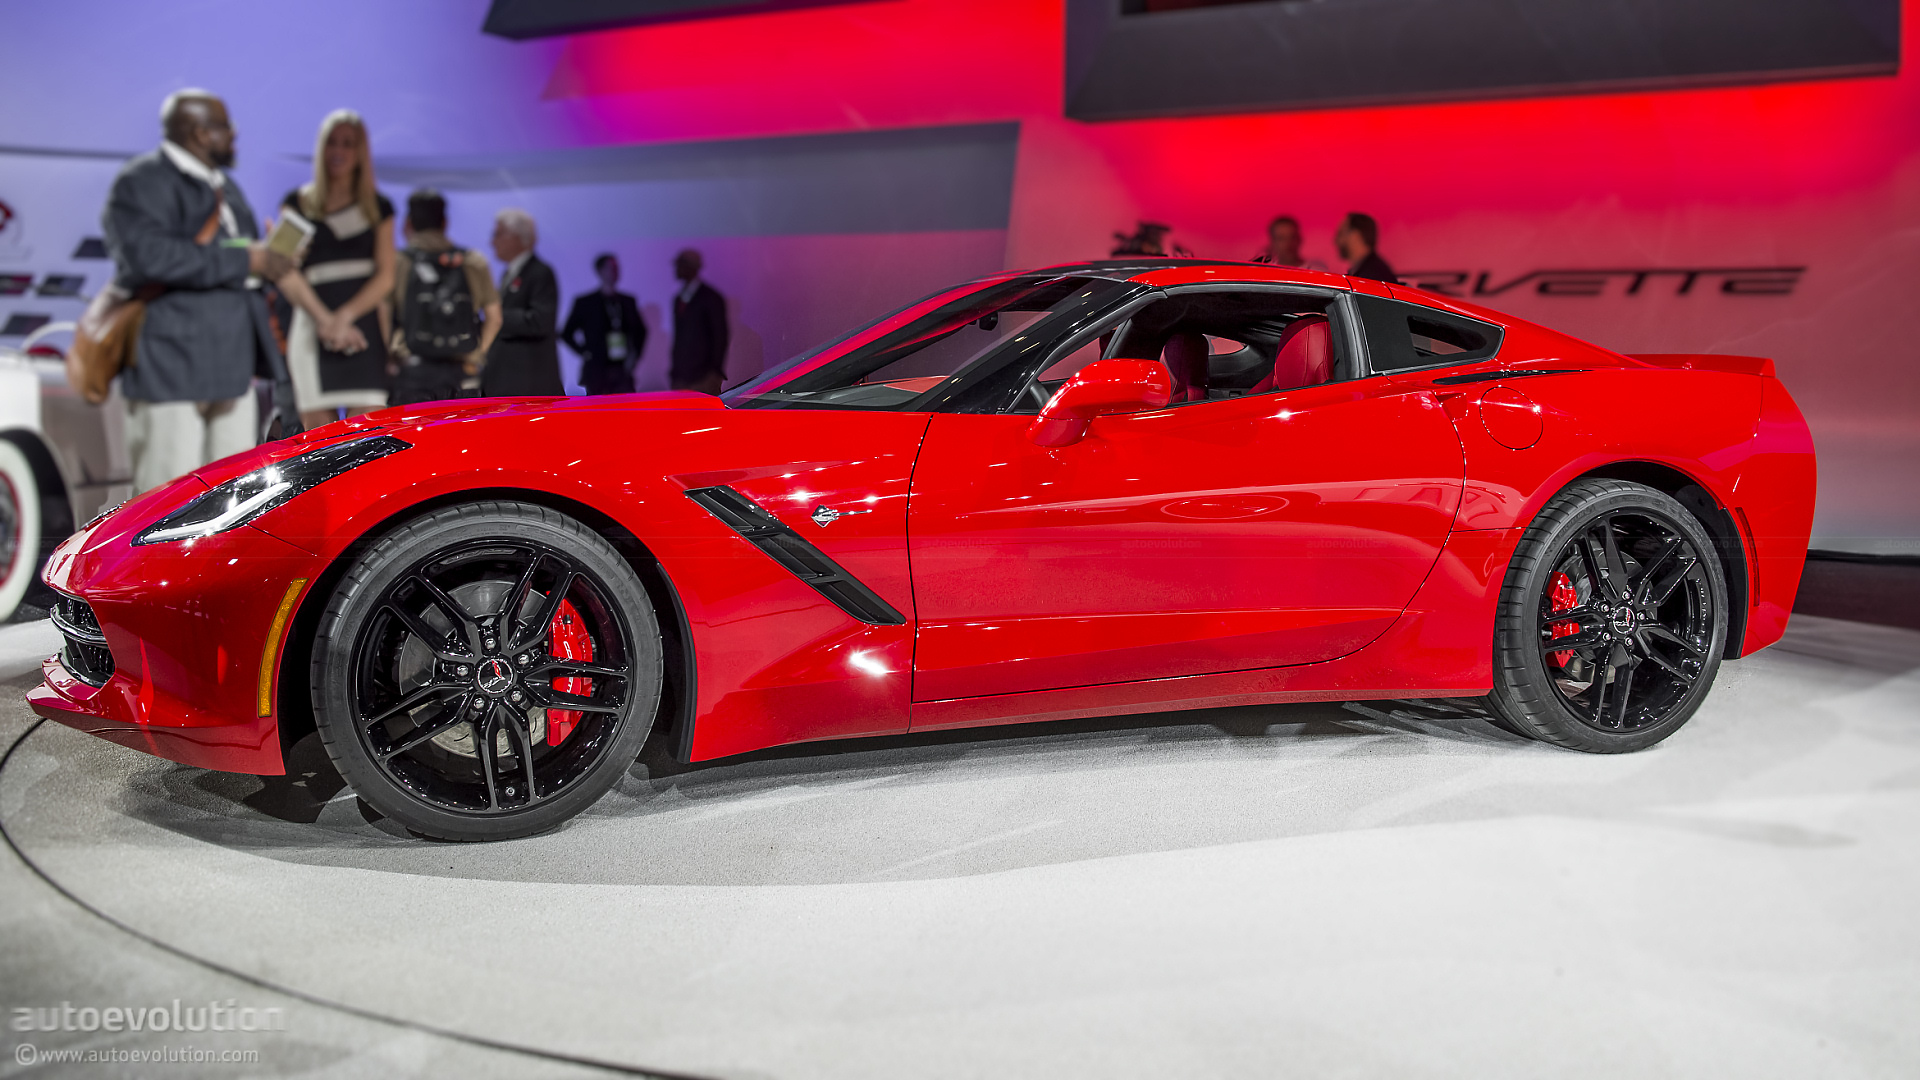 2013 Naias 2014 Chevrolet Corvette C7 Stingray In Detail